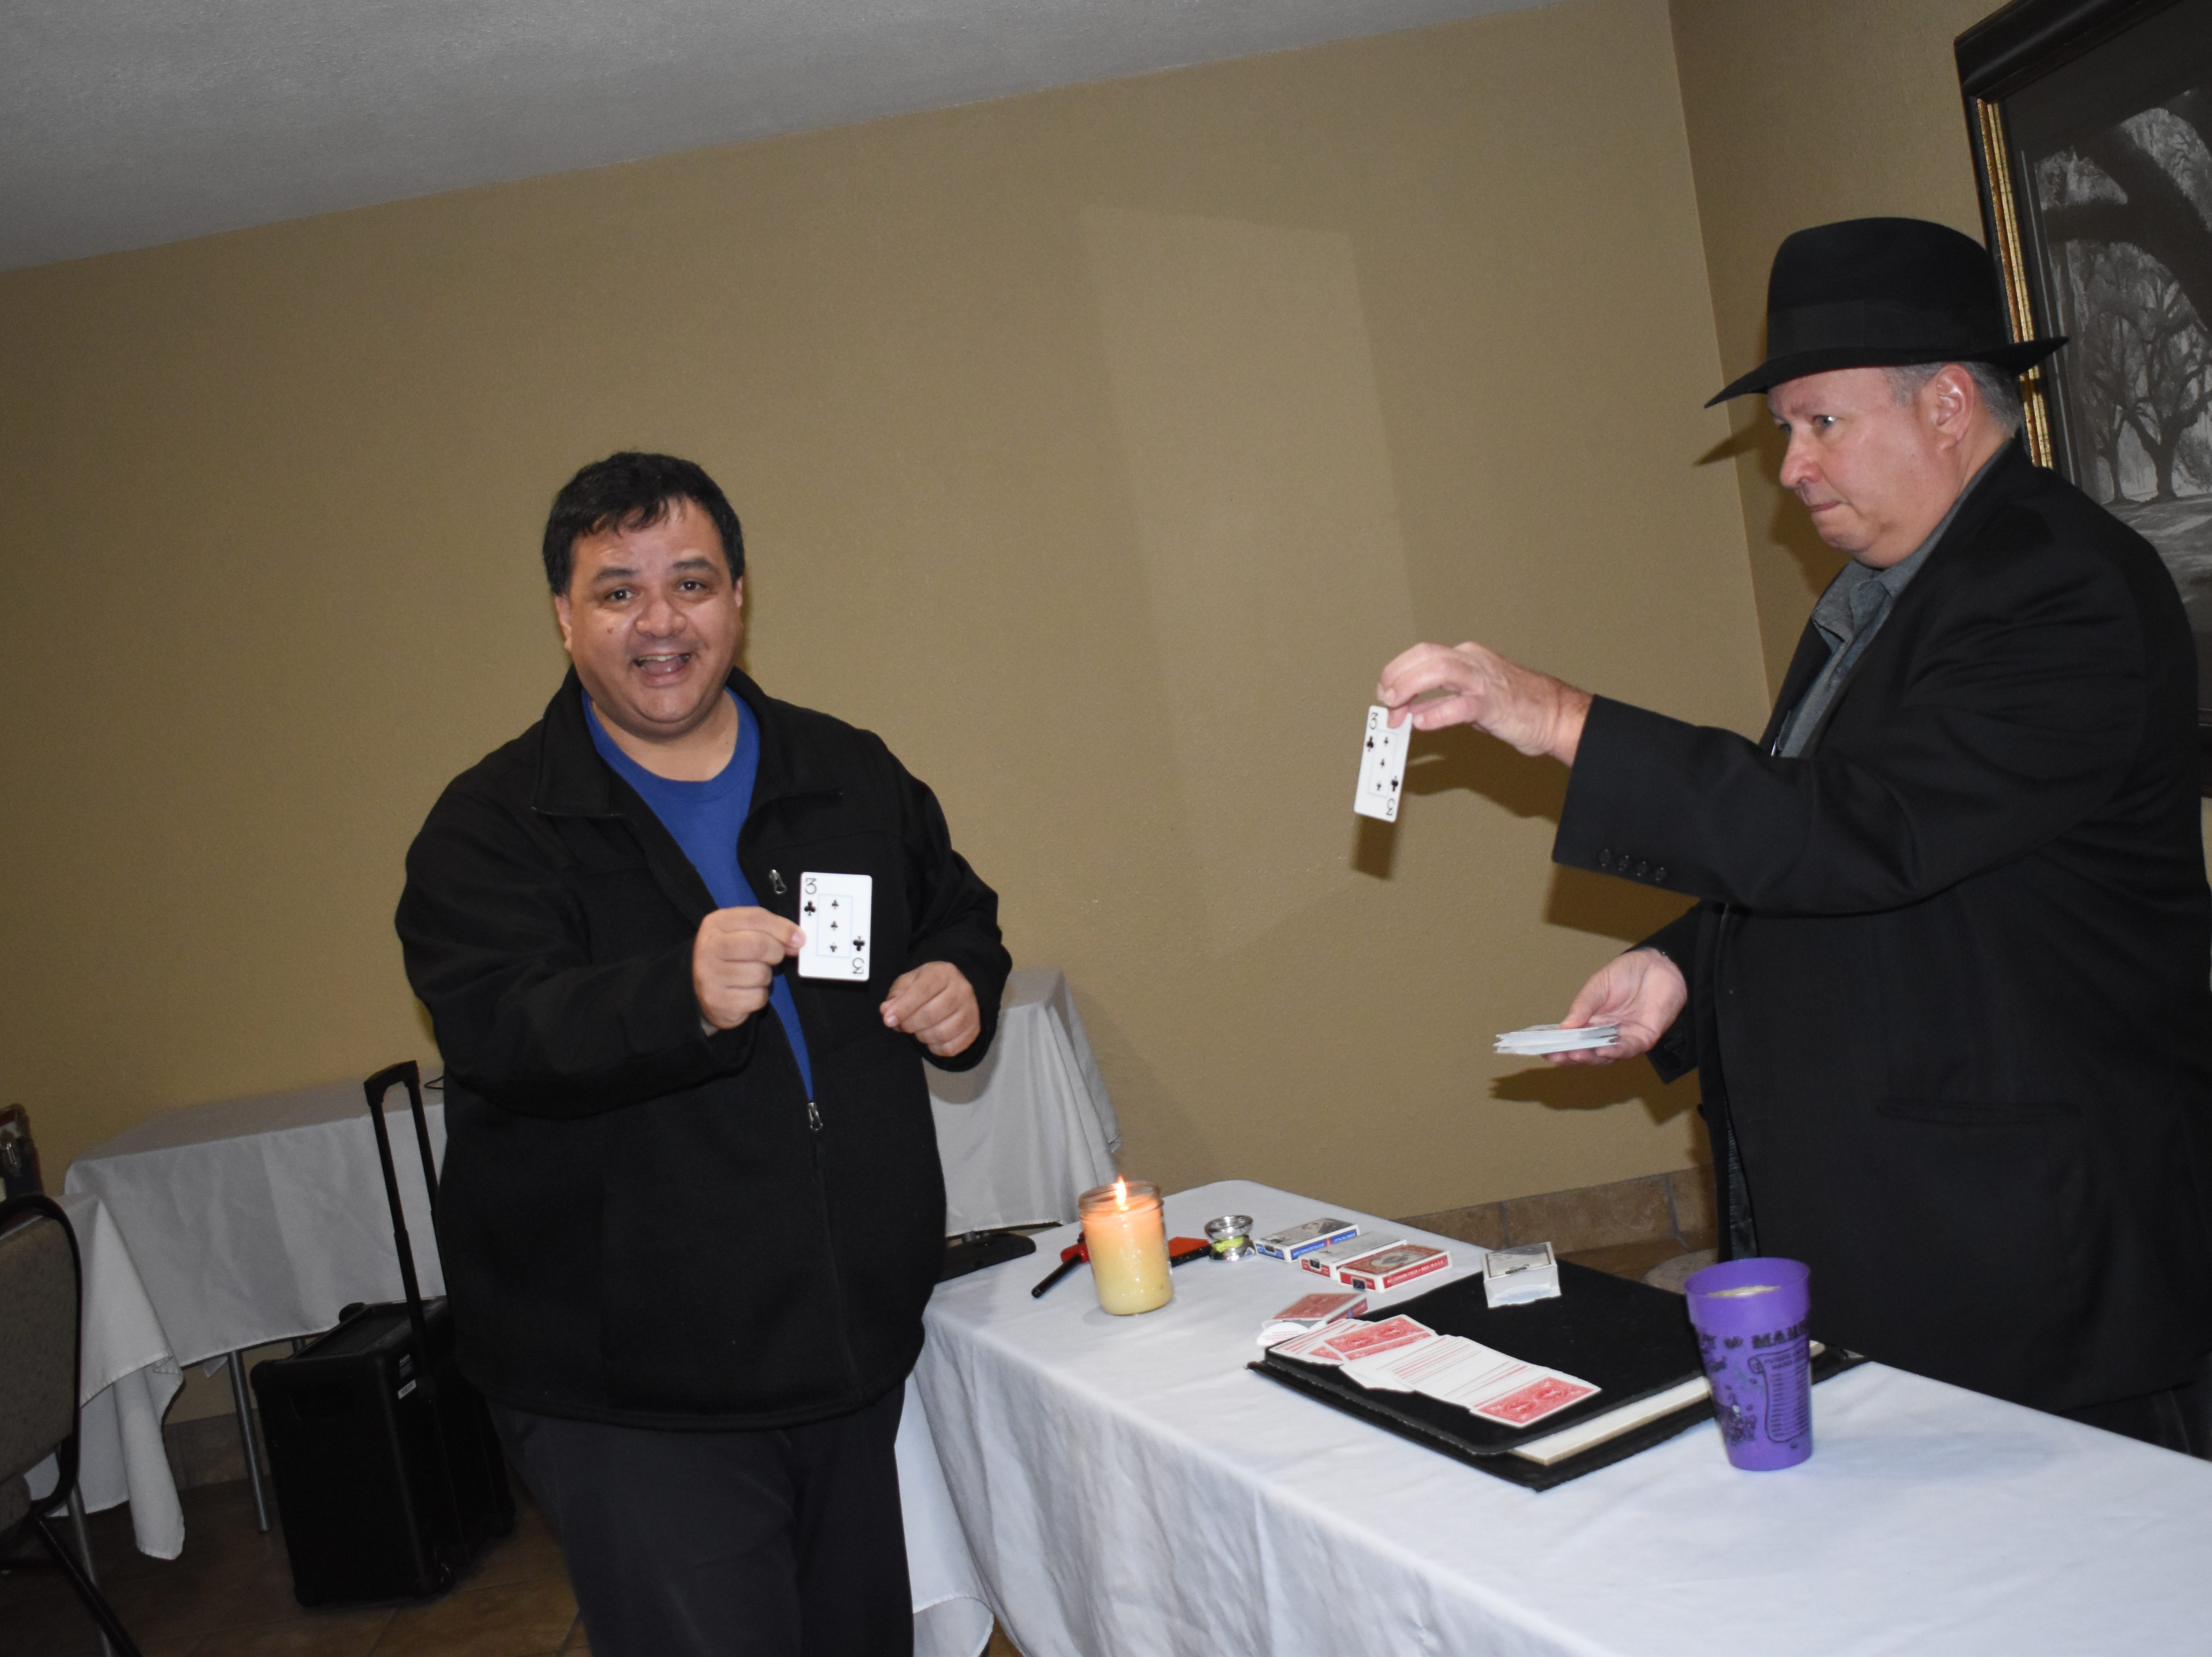 The Rapides Parish Library held their 2019 Creative Con Saturday, Feb. 9, 2019 at the Best Western Inn & Suites on North MacArthur Drive. Creative Con caters to all creative interests such as books, cosplay, gaming, art, steampunk, 3D printing and more. Among the panel discussions were a talk about acting and the acting business by Alexandria actor and stylist Dan Forest, and  discussions about magic by magician David Lebeouf, Doctor Who by Jack Sawtelle and writing by Christee Atwood. Other events included a costume contest, trivia games and play fighting by the Society for Creative Anarchronism.